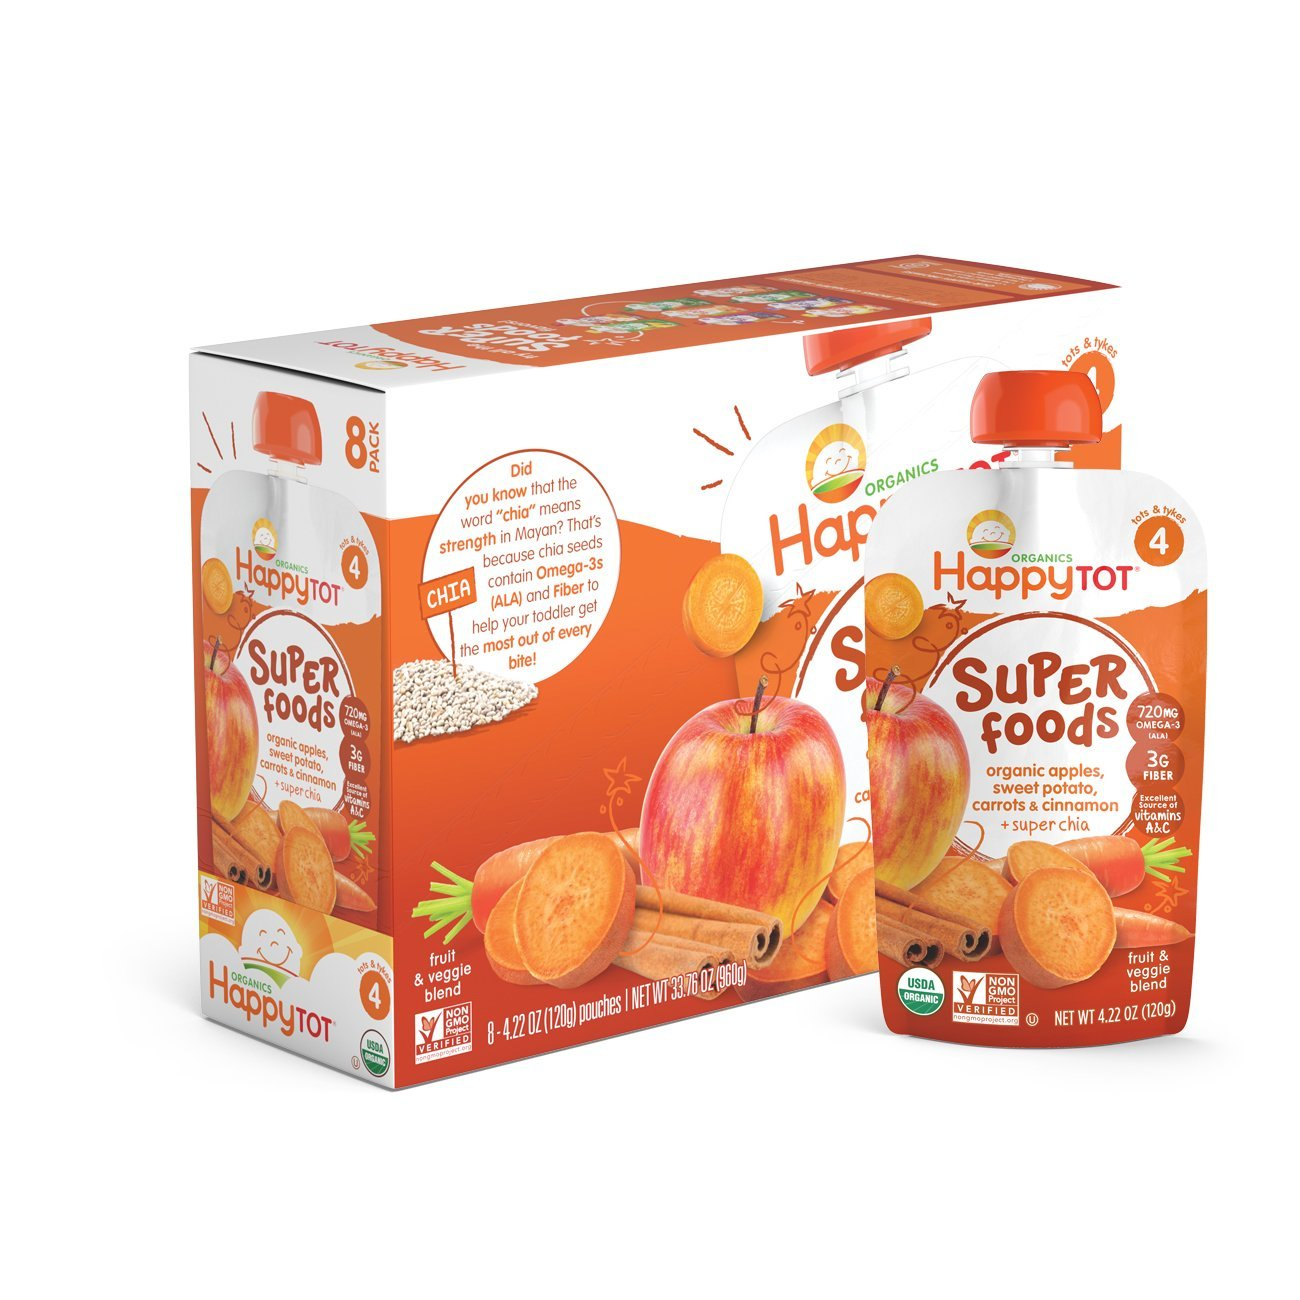 Happy Tot Organic Stage 4 Super Foods Variety Pack, 4.22 Ounce Pouch (Pack of 16) Green Beans Pear & Pea, Sweet Potato Apple Carrot & Cinnamon, Apple & Butternut Squash, Spinach Mango & Pear Nurture Inc. 01242